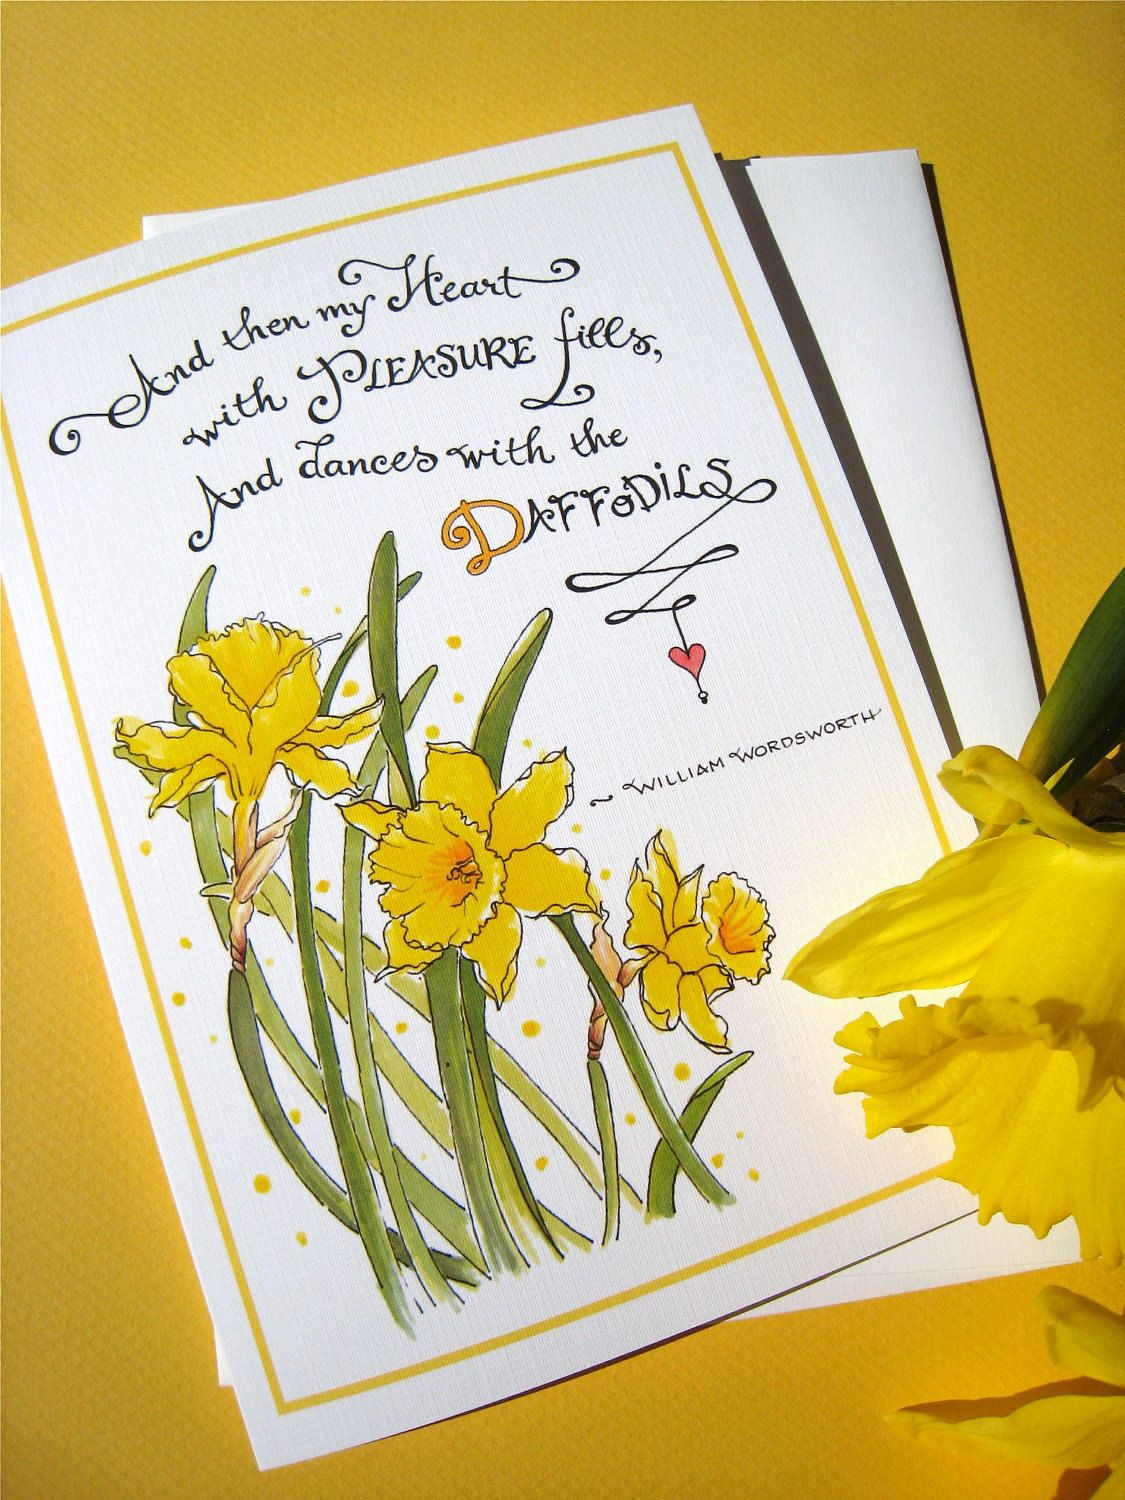 Inspirational Card Encouragement Get Well Literary Etsy In 2020 Daffodils I Wandered Lonely A Cloud Daffodil Symbol